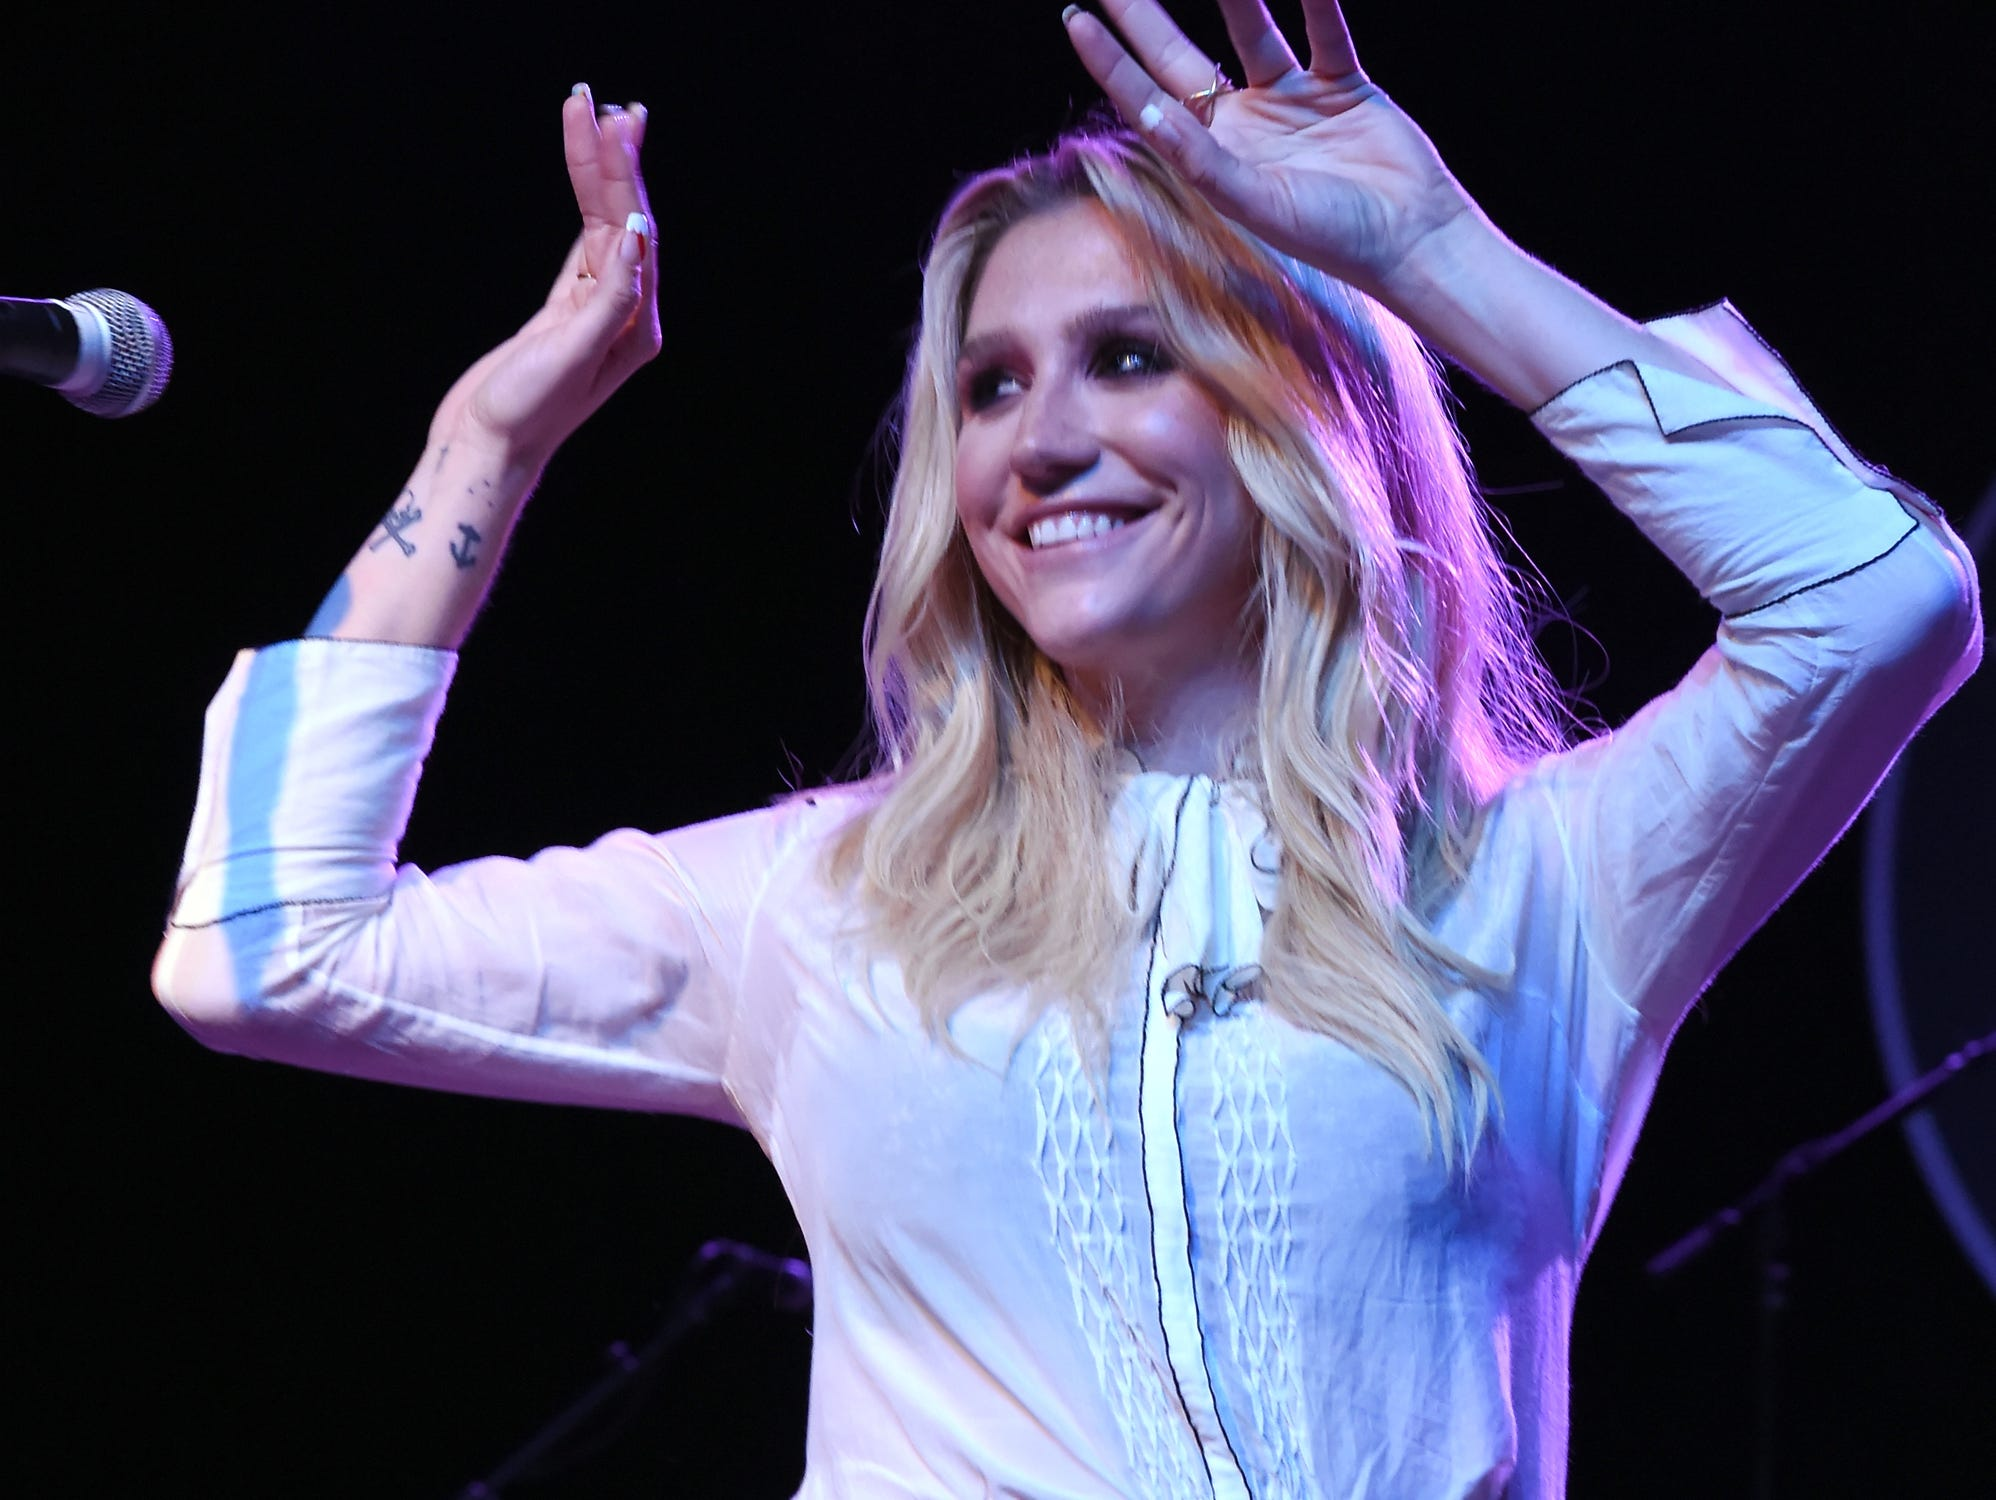 Kesha performs on stage at Brian Fest: A Night To Celebrate The Music Of Brian Wilson at The Fonda Theatre on March 30, 2015 in Los Angeles, California.